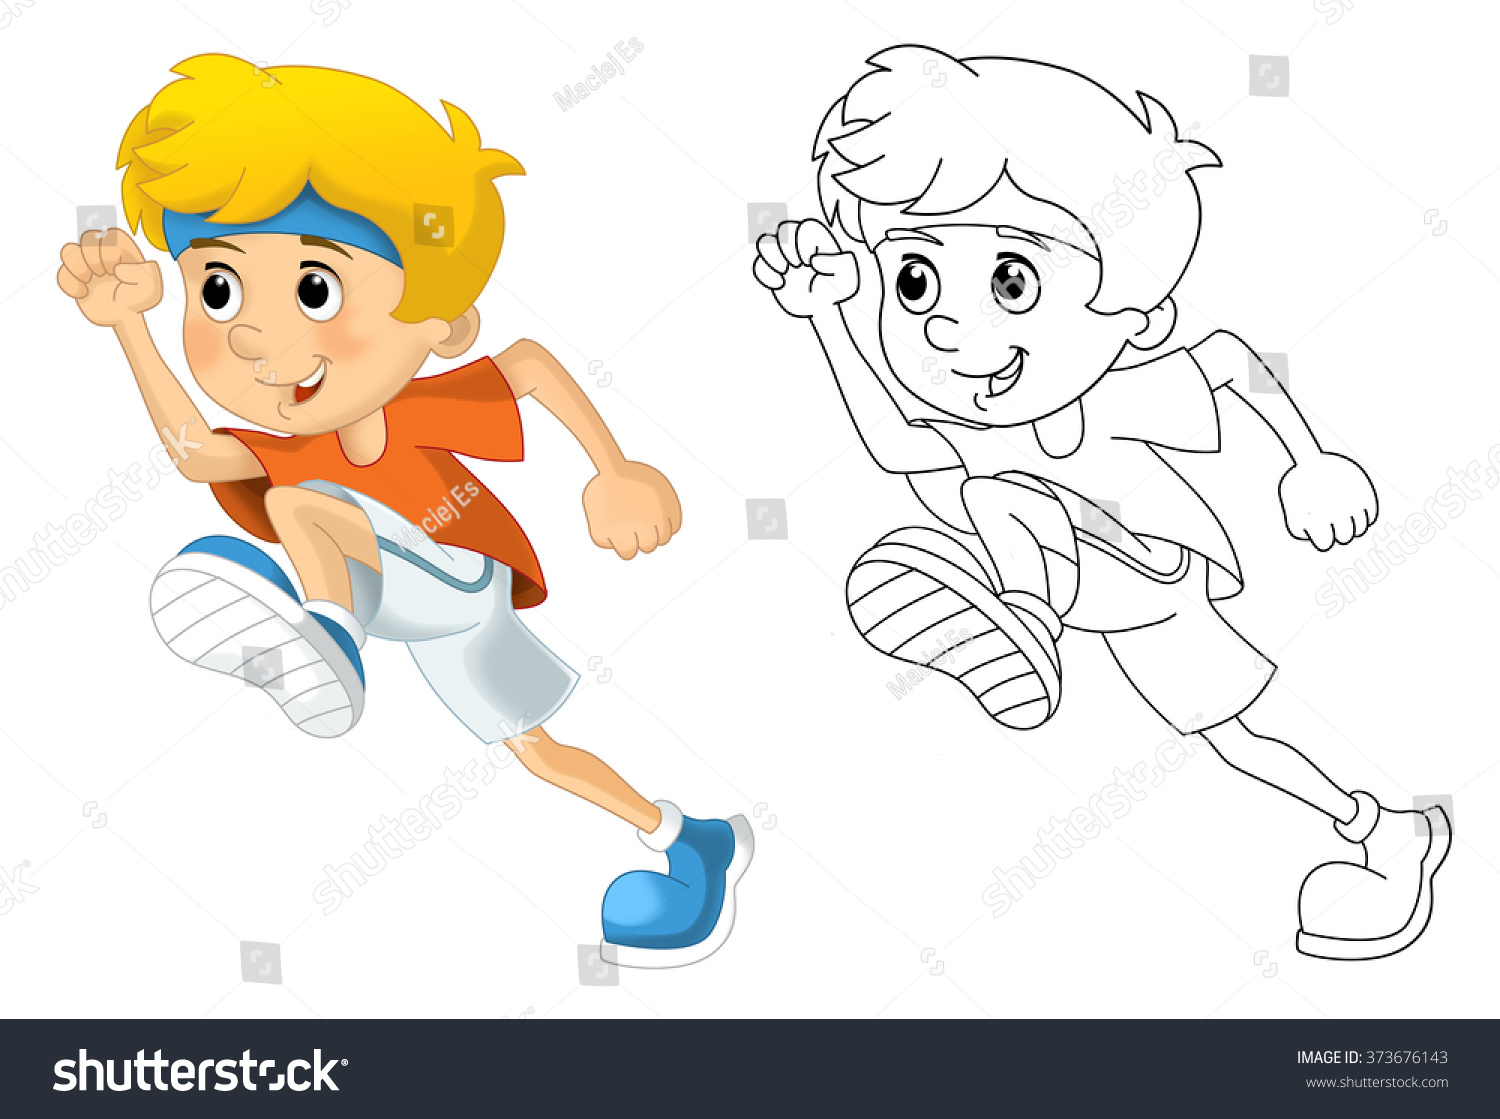 kids sport gymnastics running coloring page stock illustration